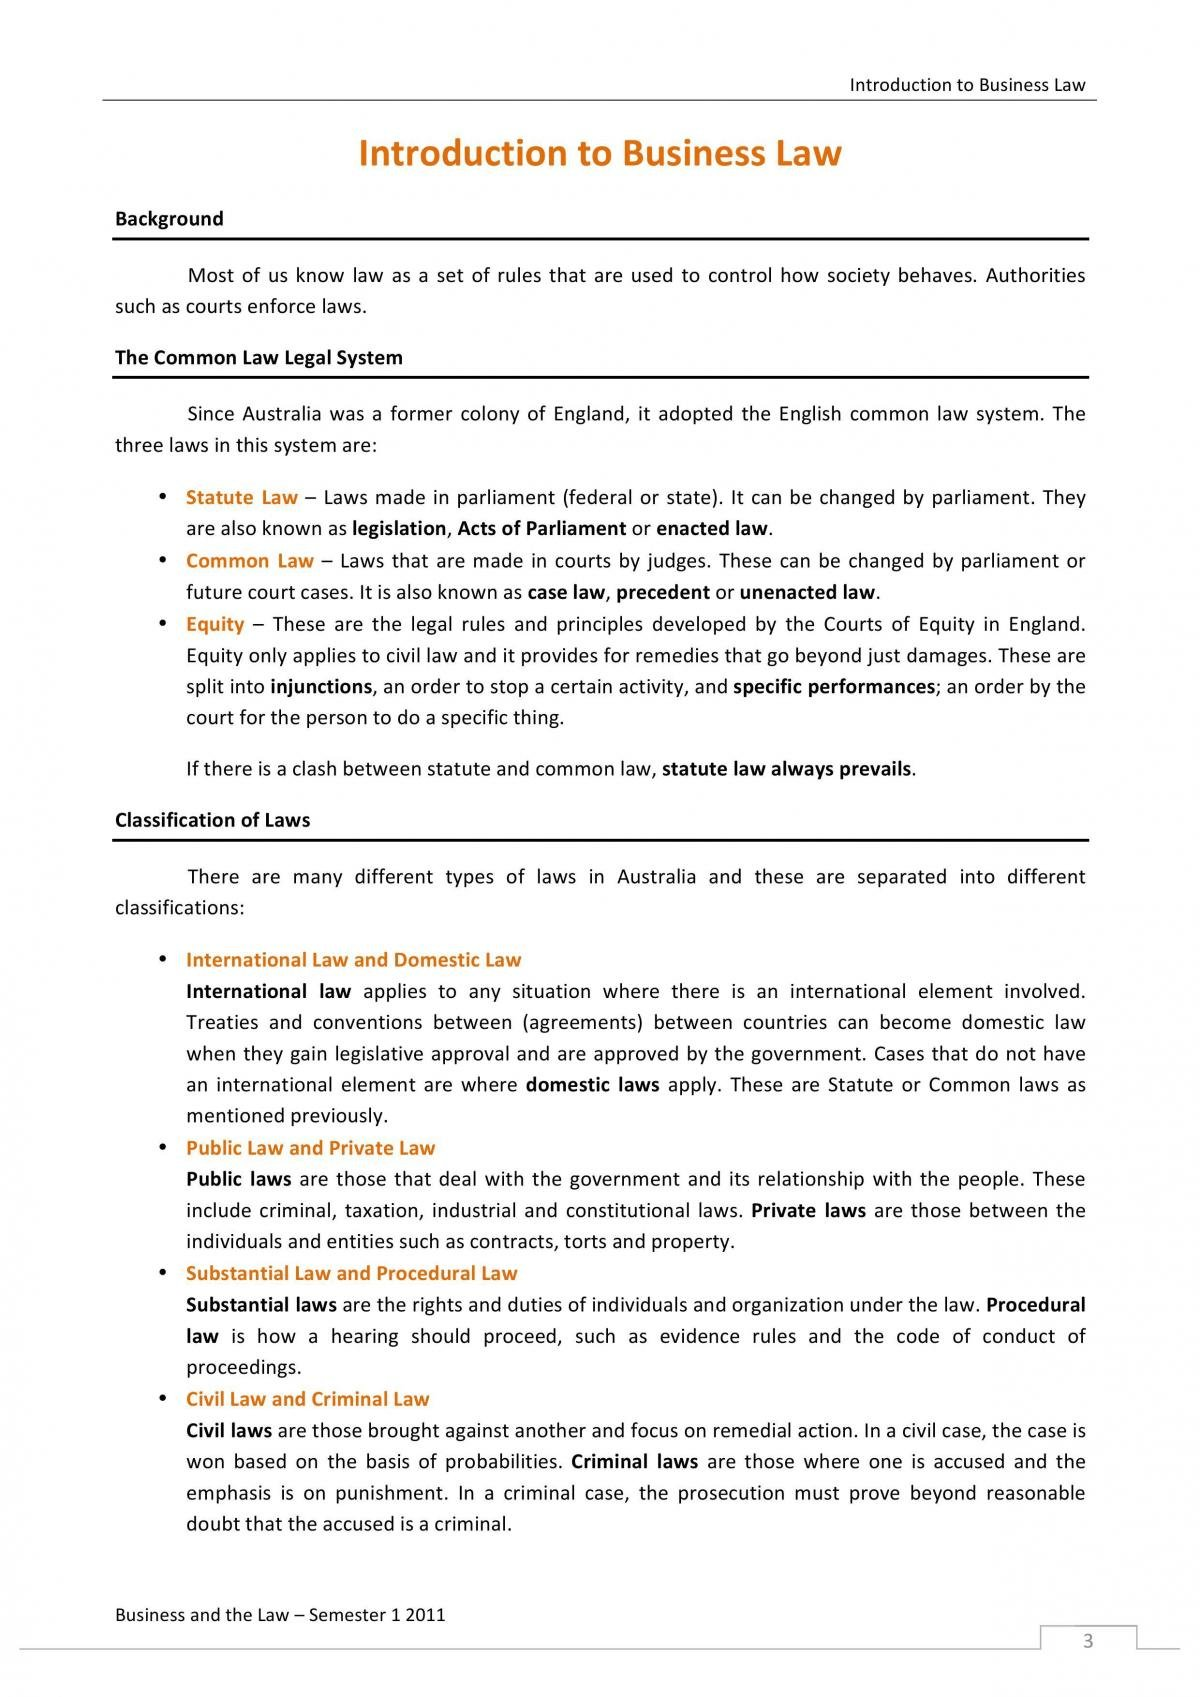 Foundations of Law - LEGL1001 - Page 2